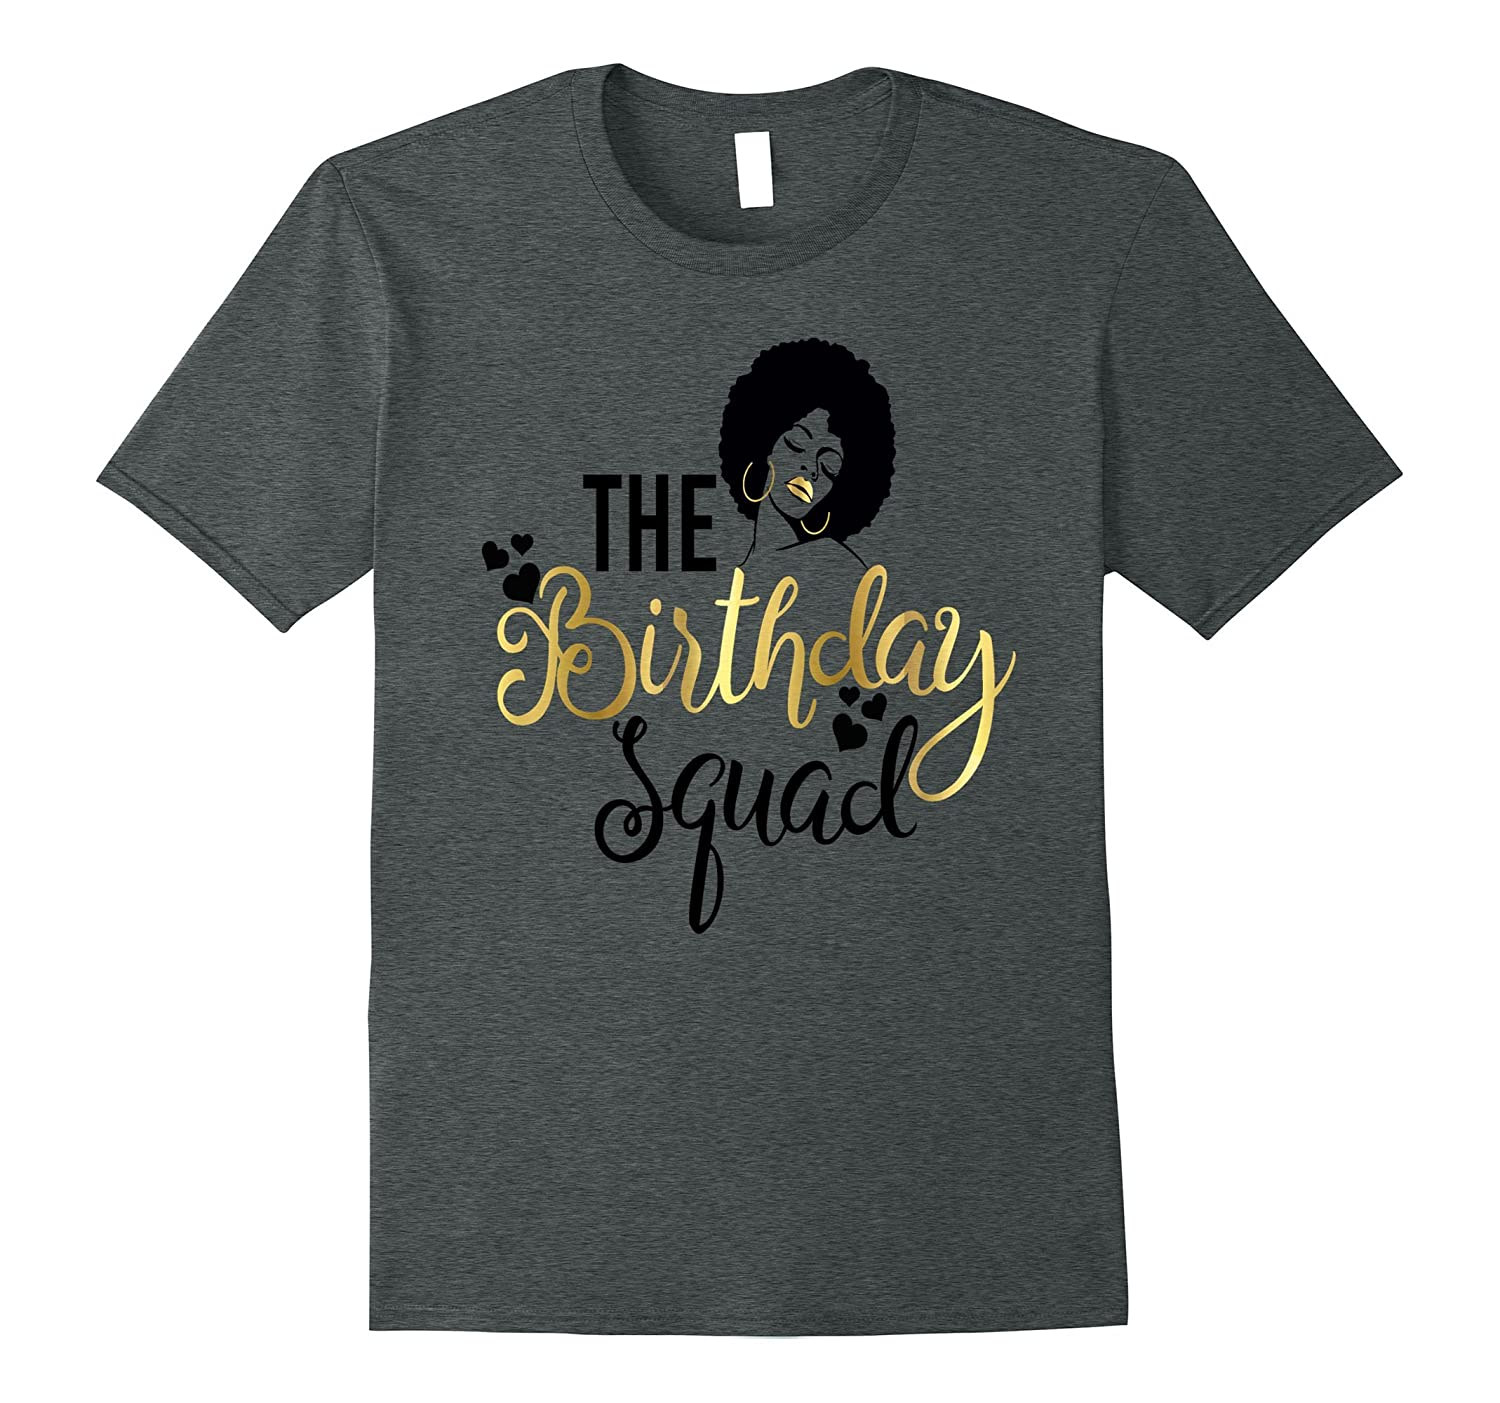 Black girl magic birthday squad shirt gold party gift art for Bucket squad gold shirt